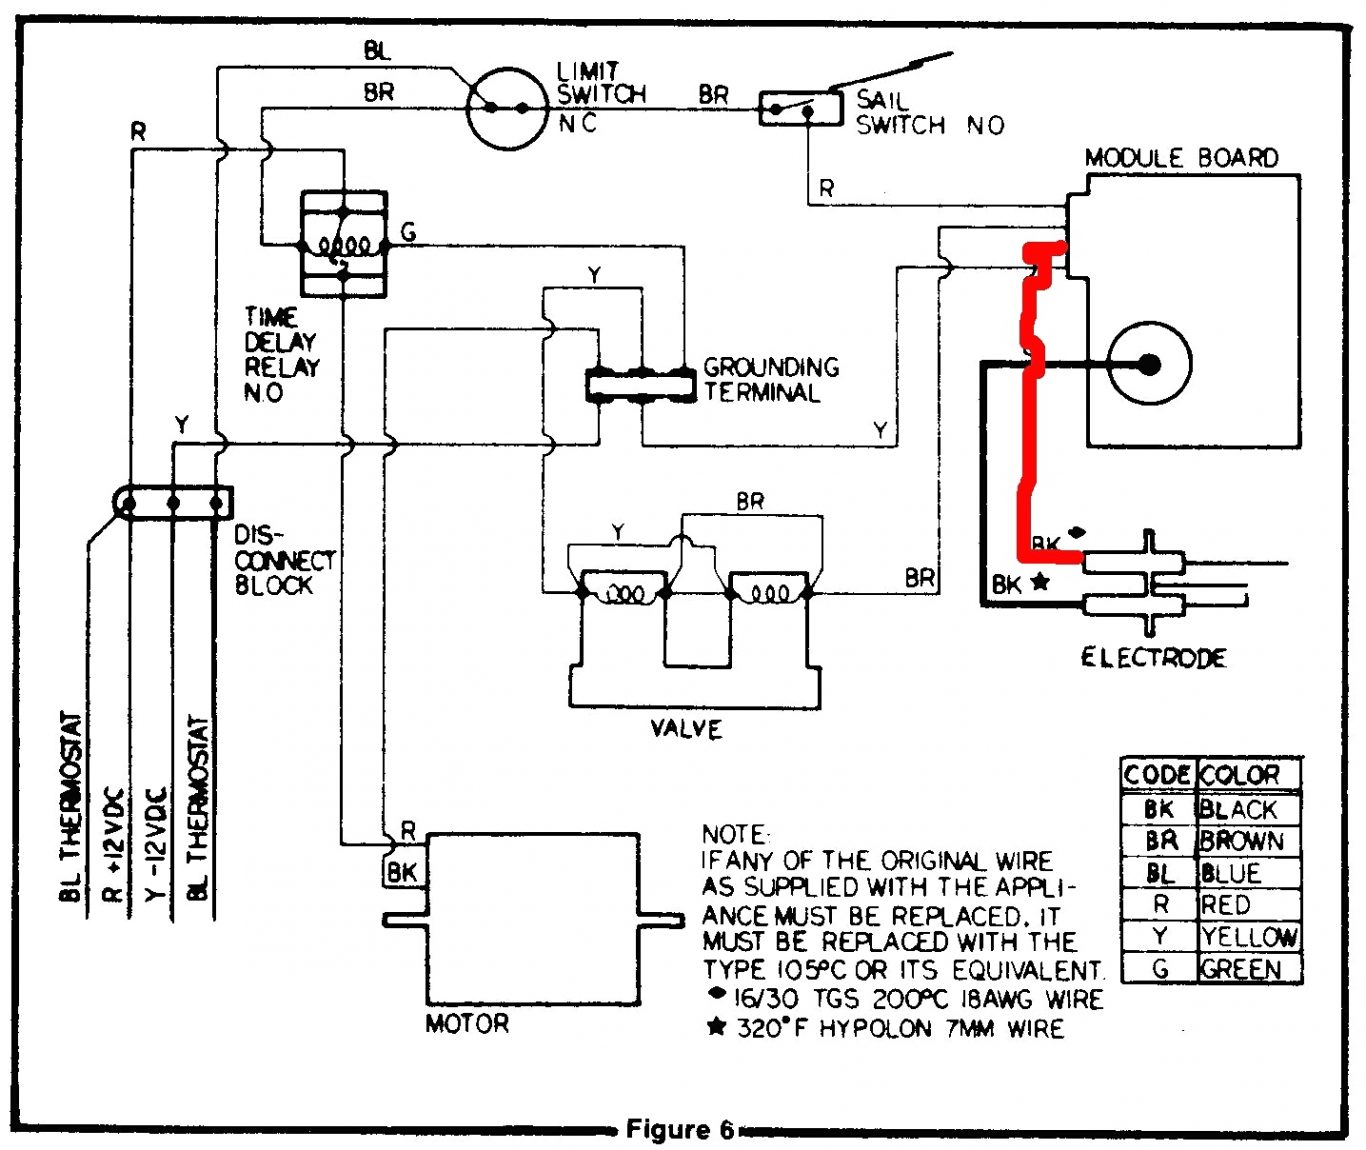 35 Coleman Mach Thermostat Wiring Diagram